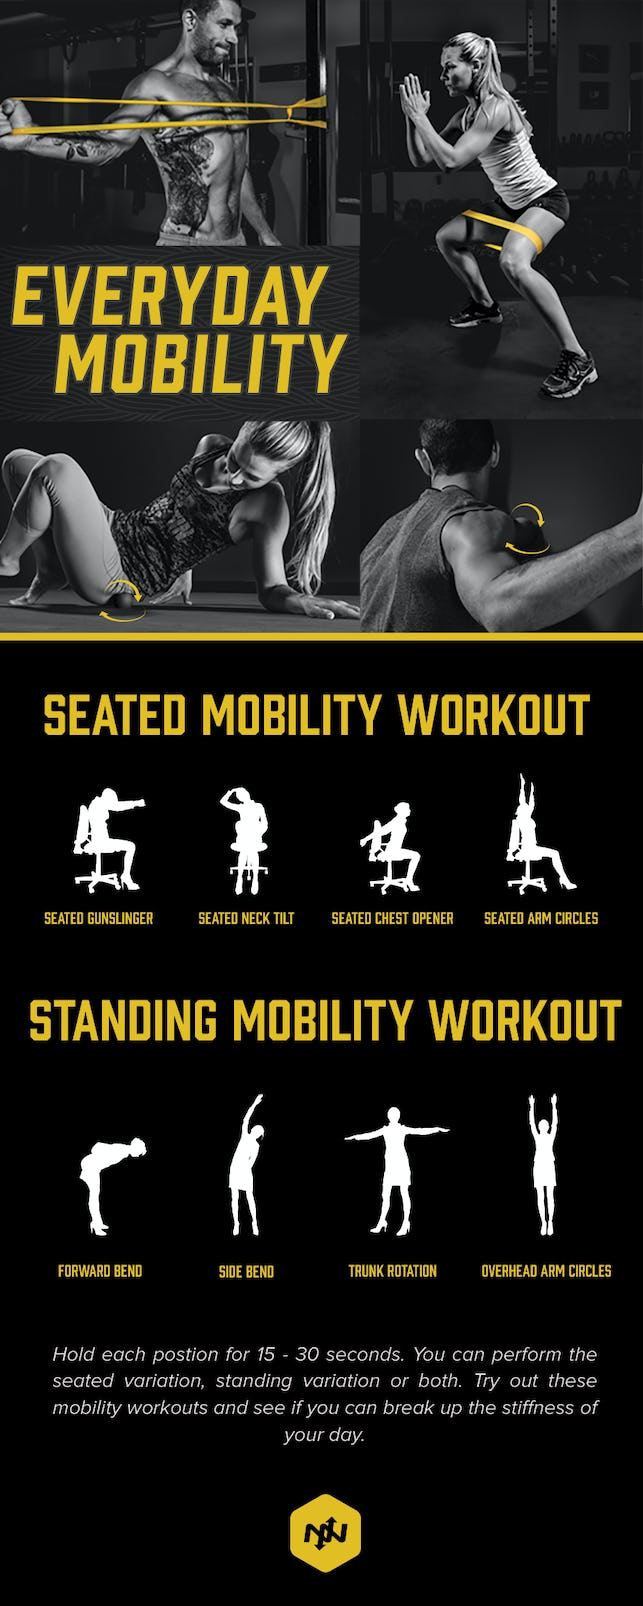 Onnit Mobility